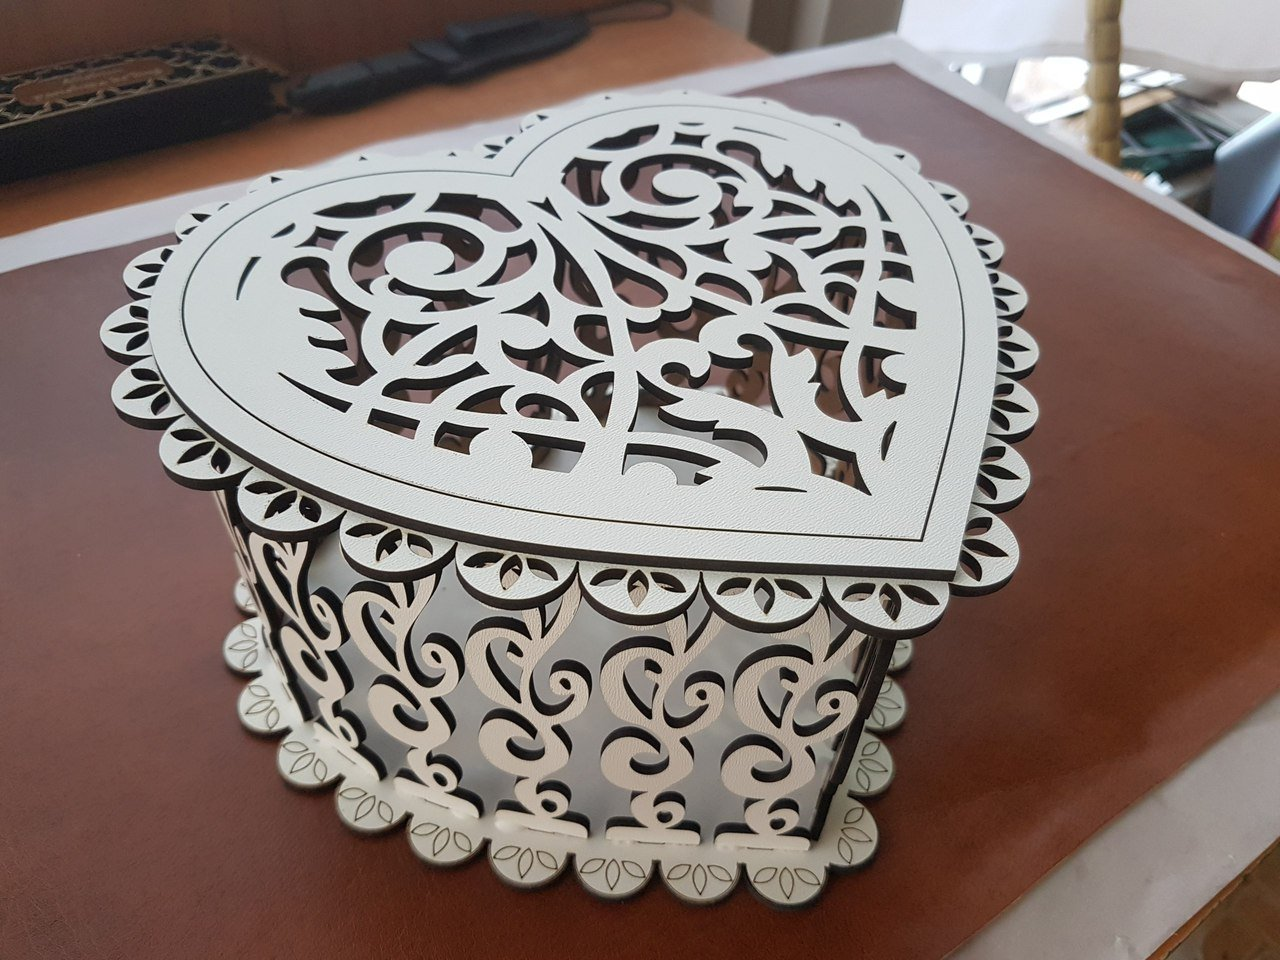 dxf downloads files for laser cutting and cnc router